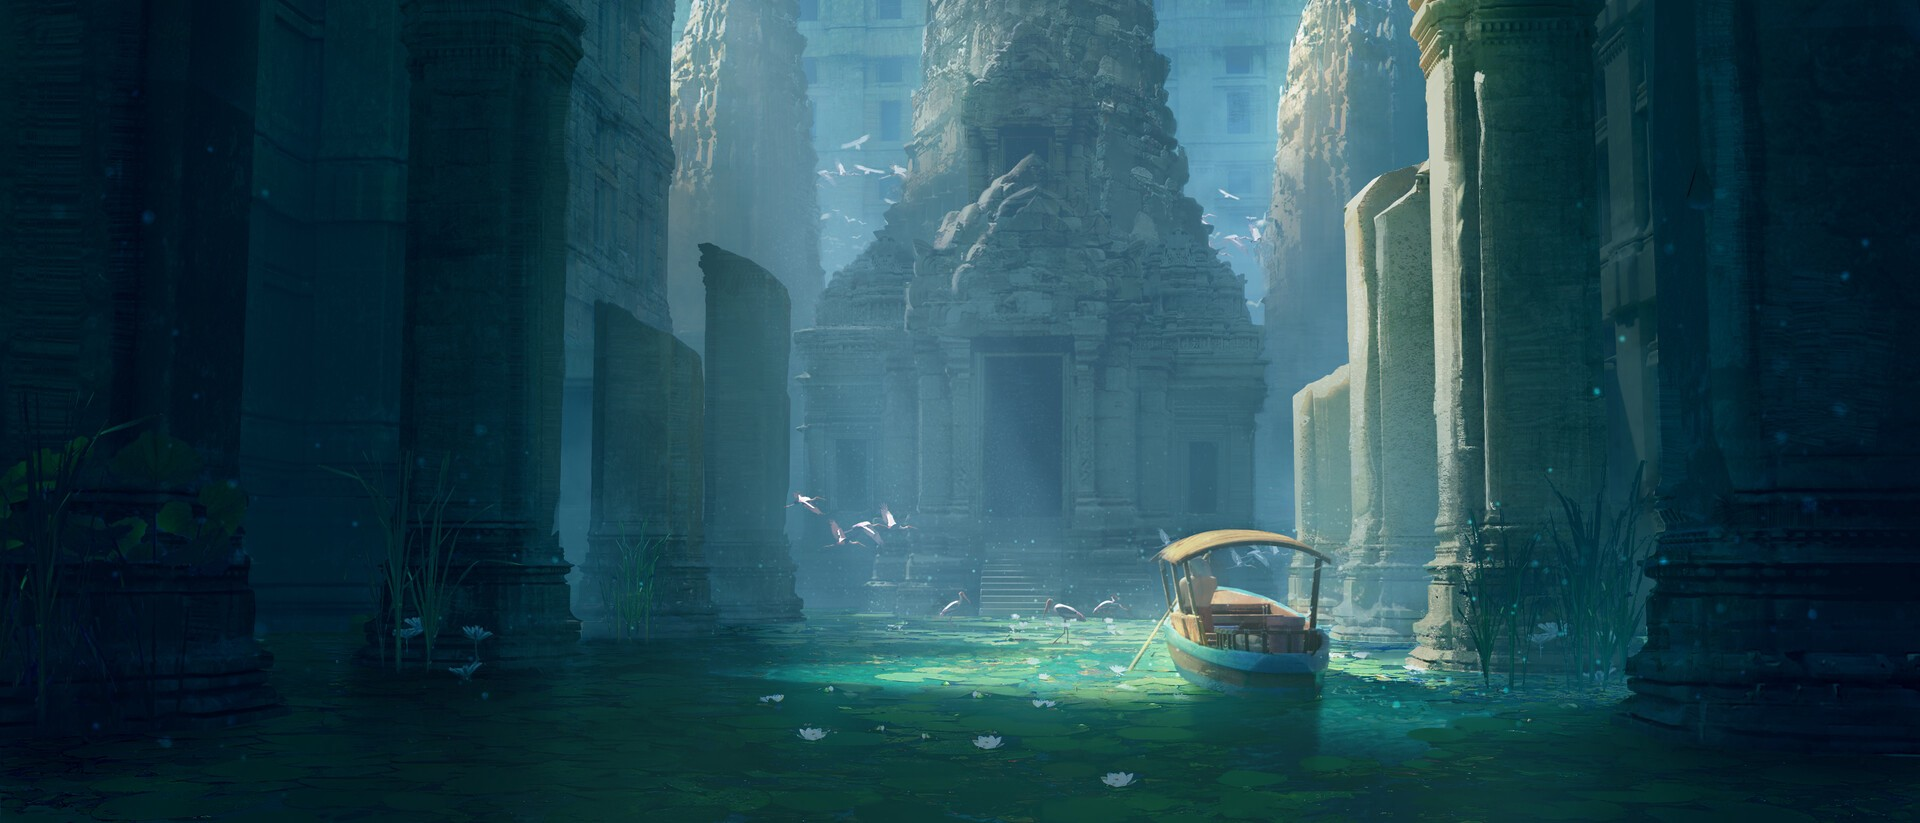 A boat in an ancient flooded temple.